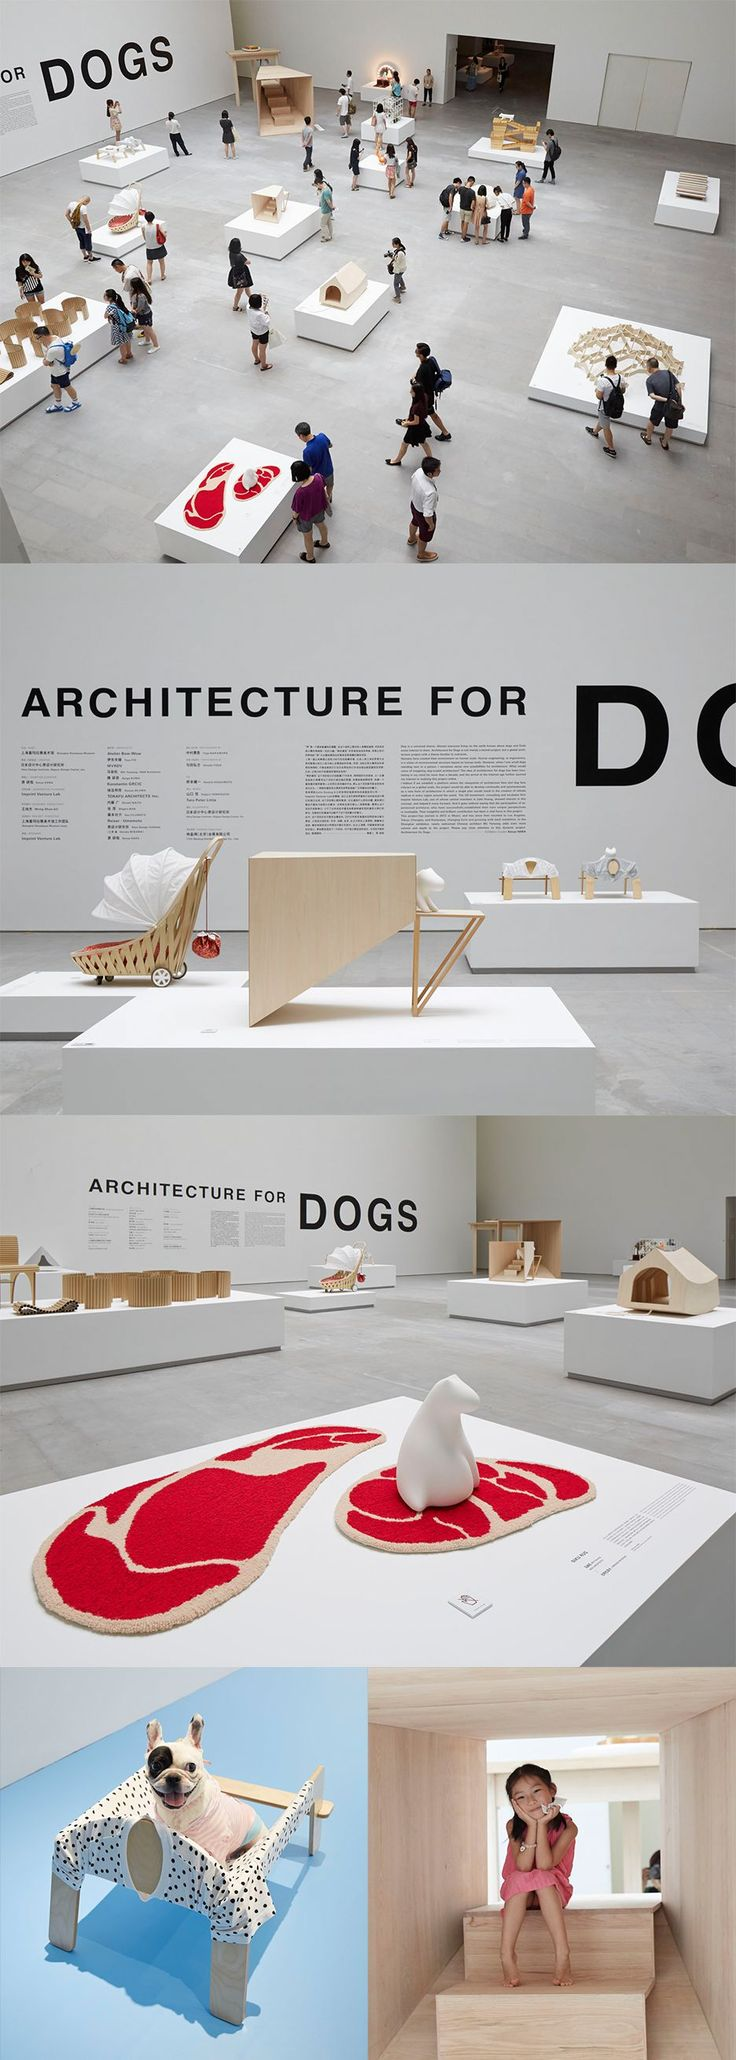 The exhibit is open from August 8 (Sat) through October 11 (Sun). This exhibition is the largest of the 6 traveling exhibitions, newly including Chinese architect Ma Yansong's